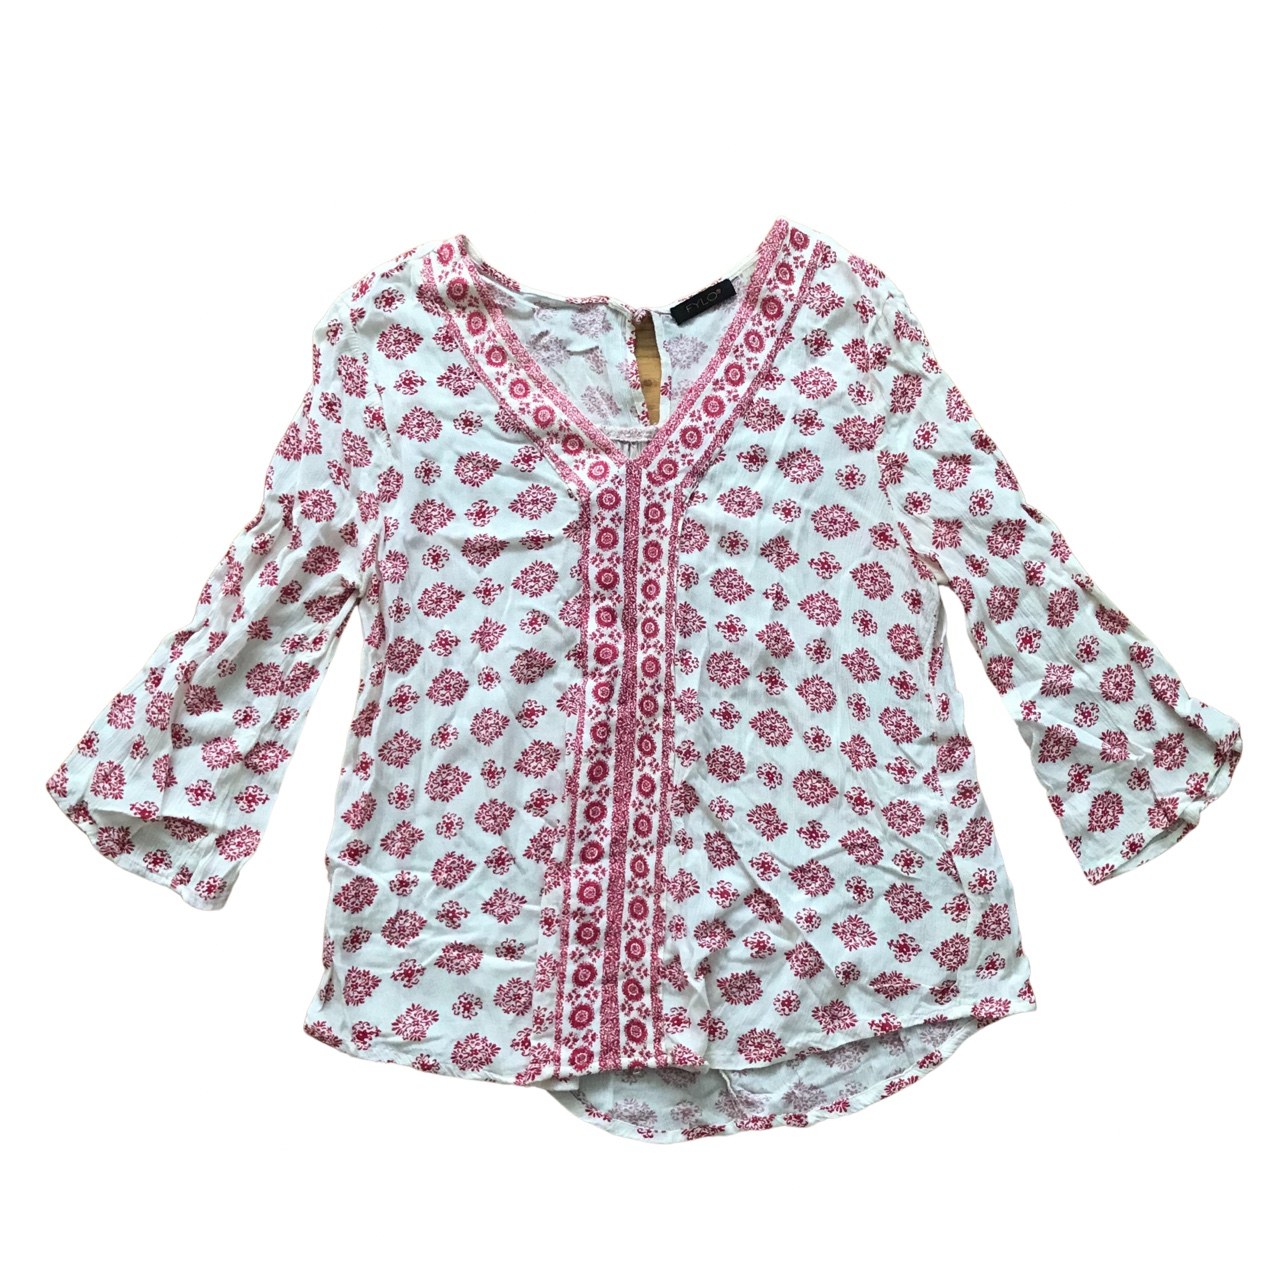 Product Image 1 - FYLO Red Patterned Textured Cotton